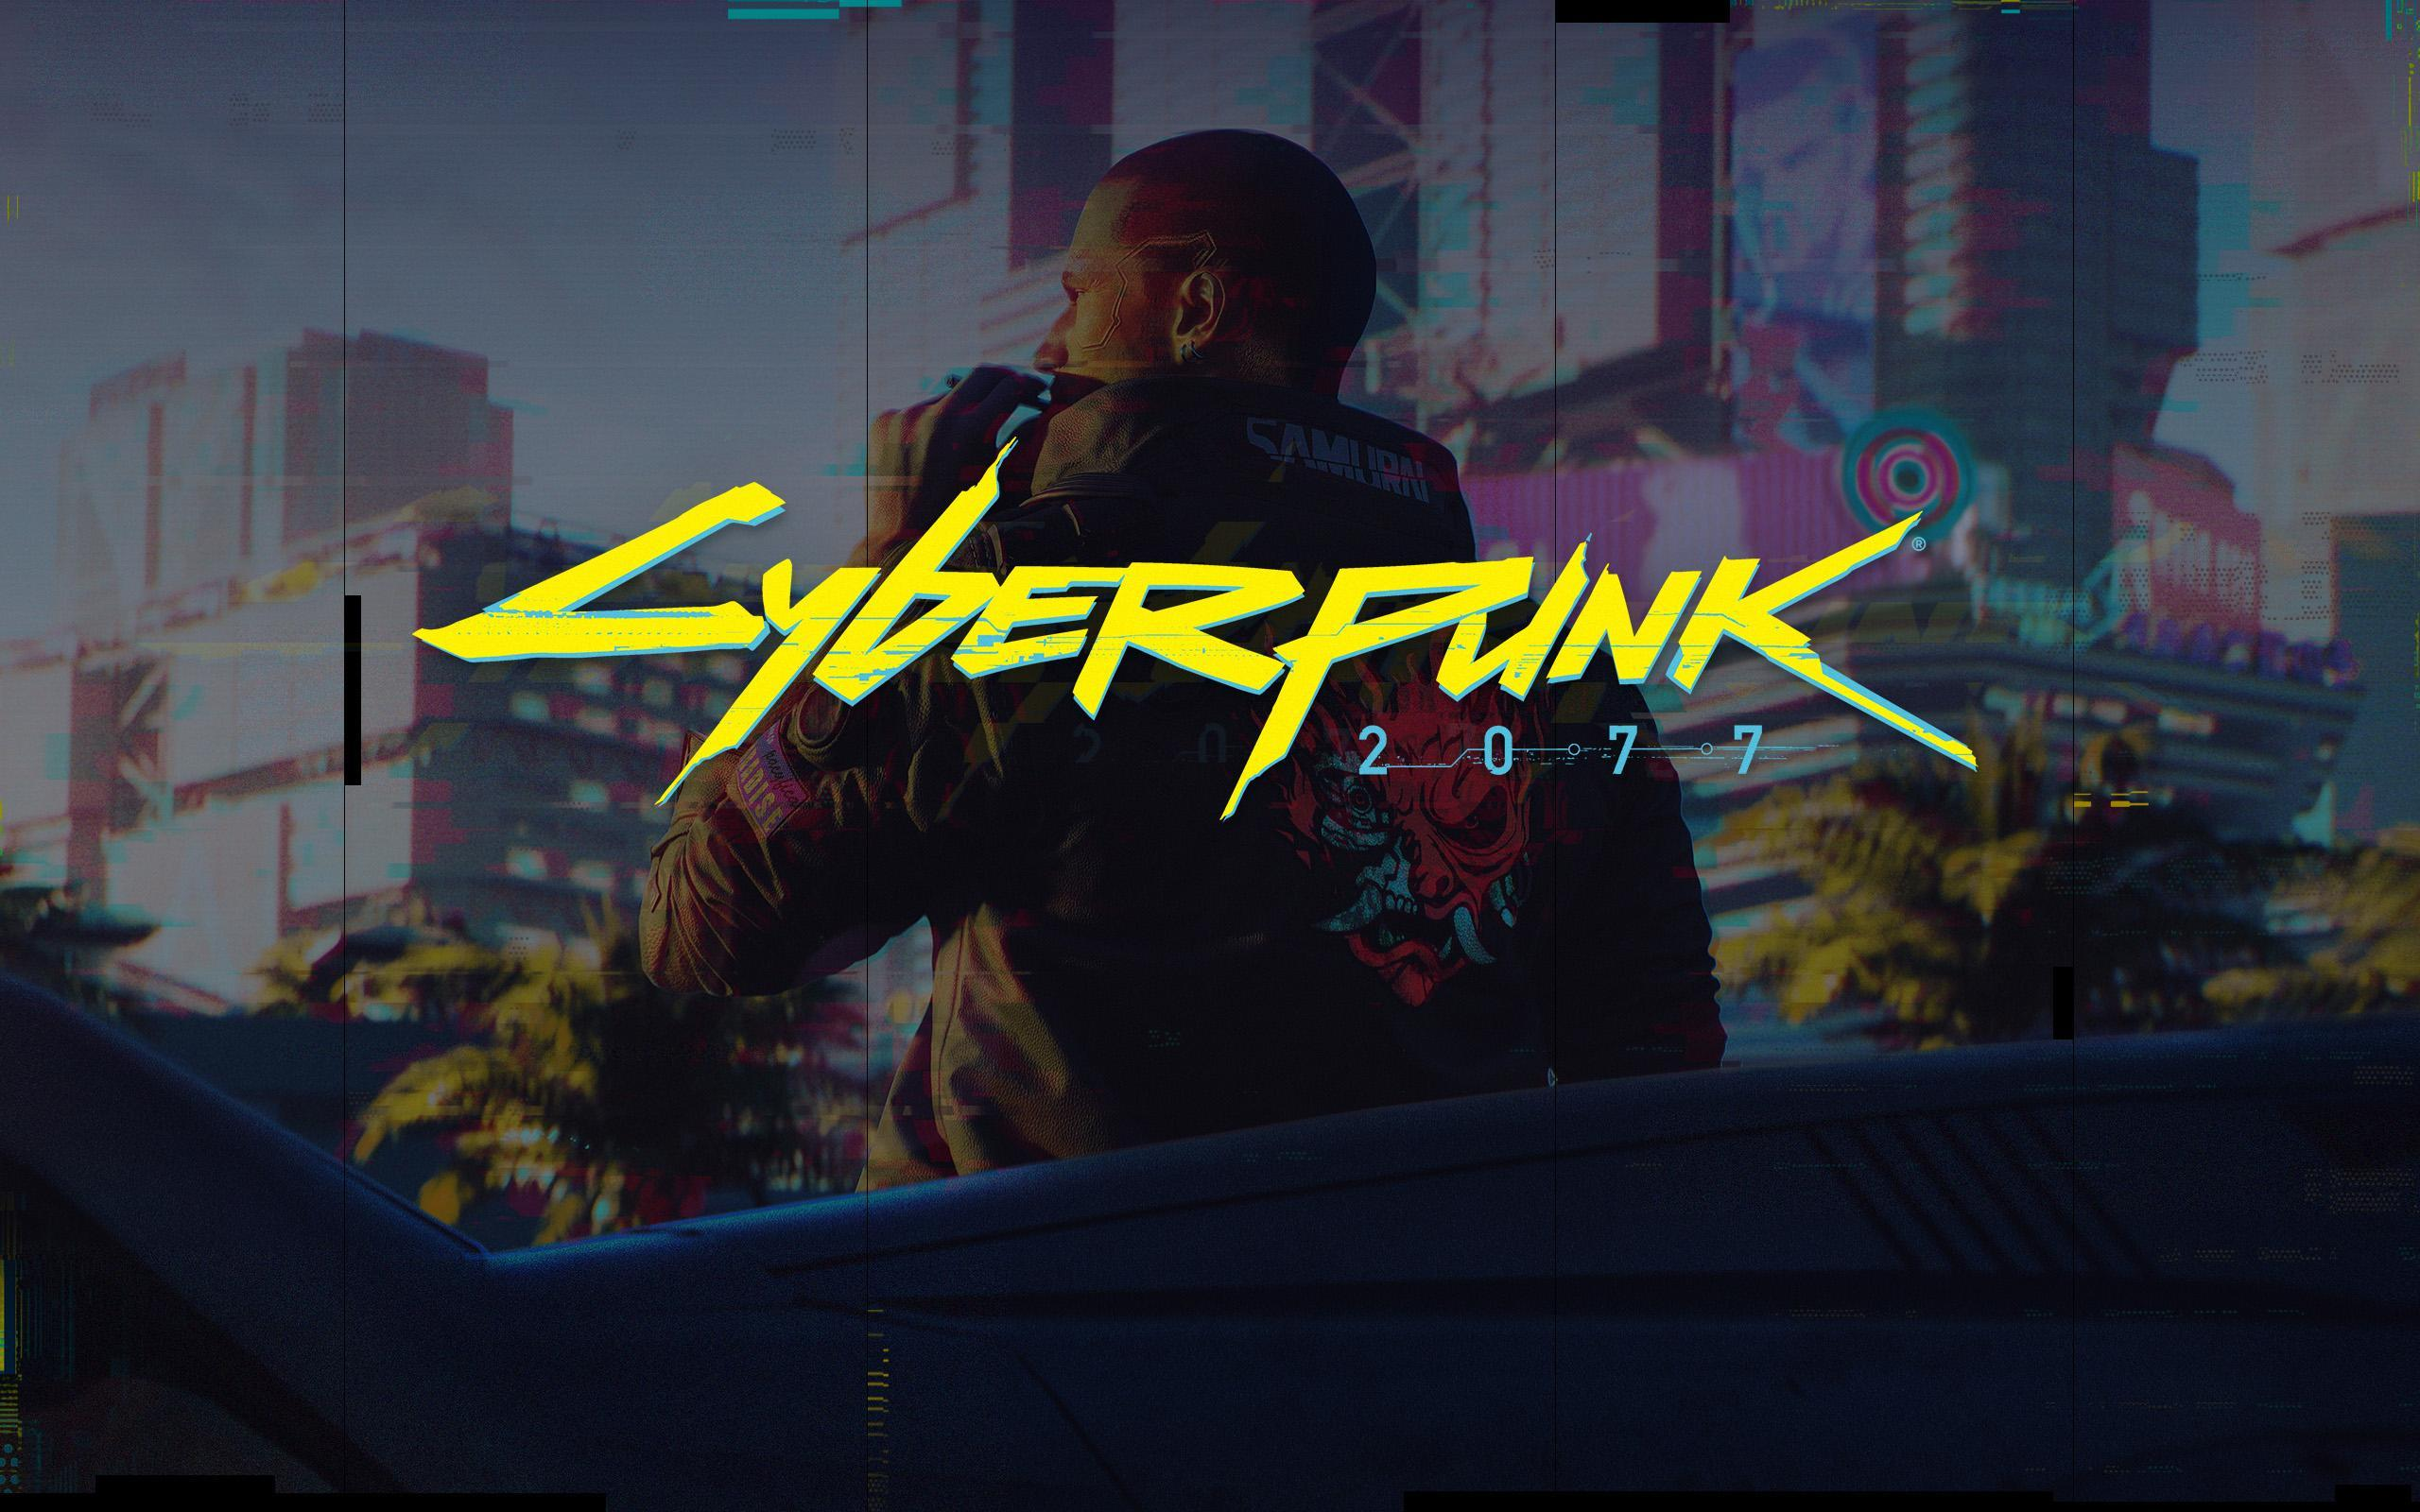 Cyberpunk 2077 Wallpapers 4k For Android Apk Download